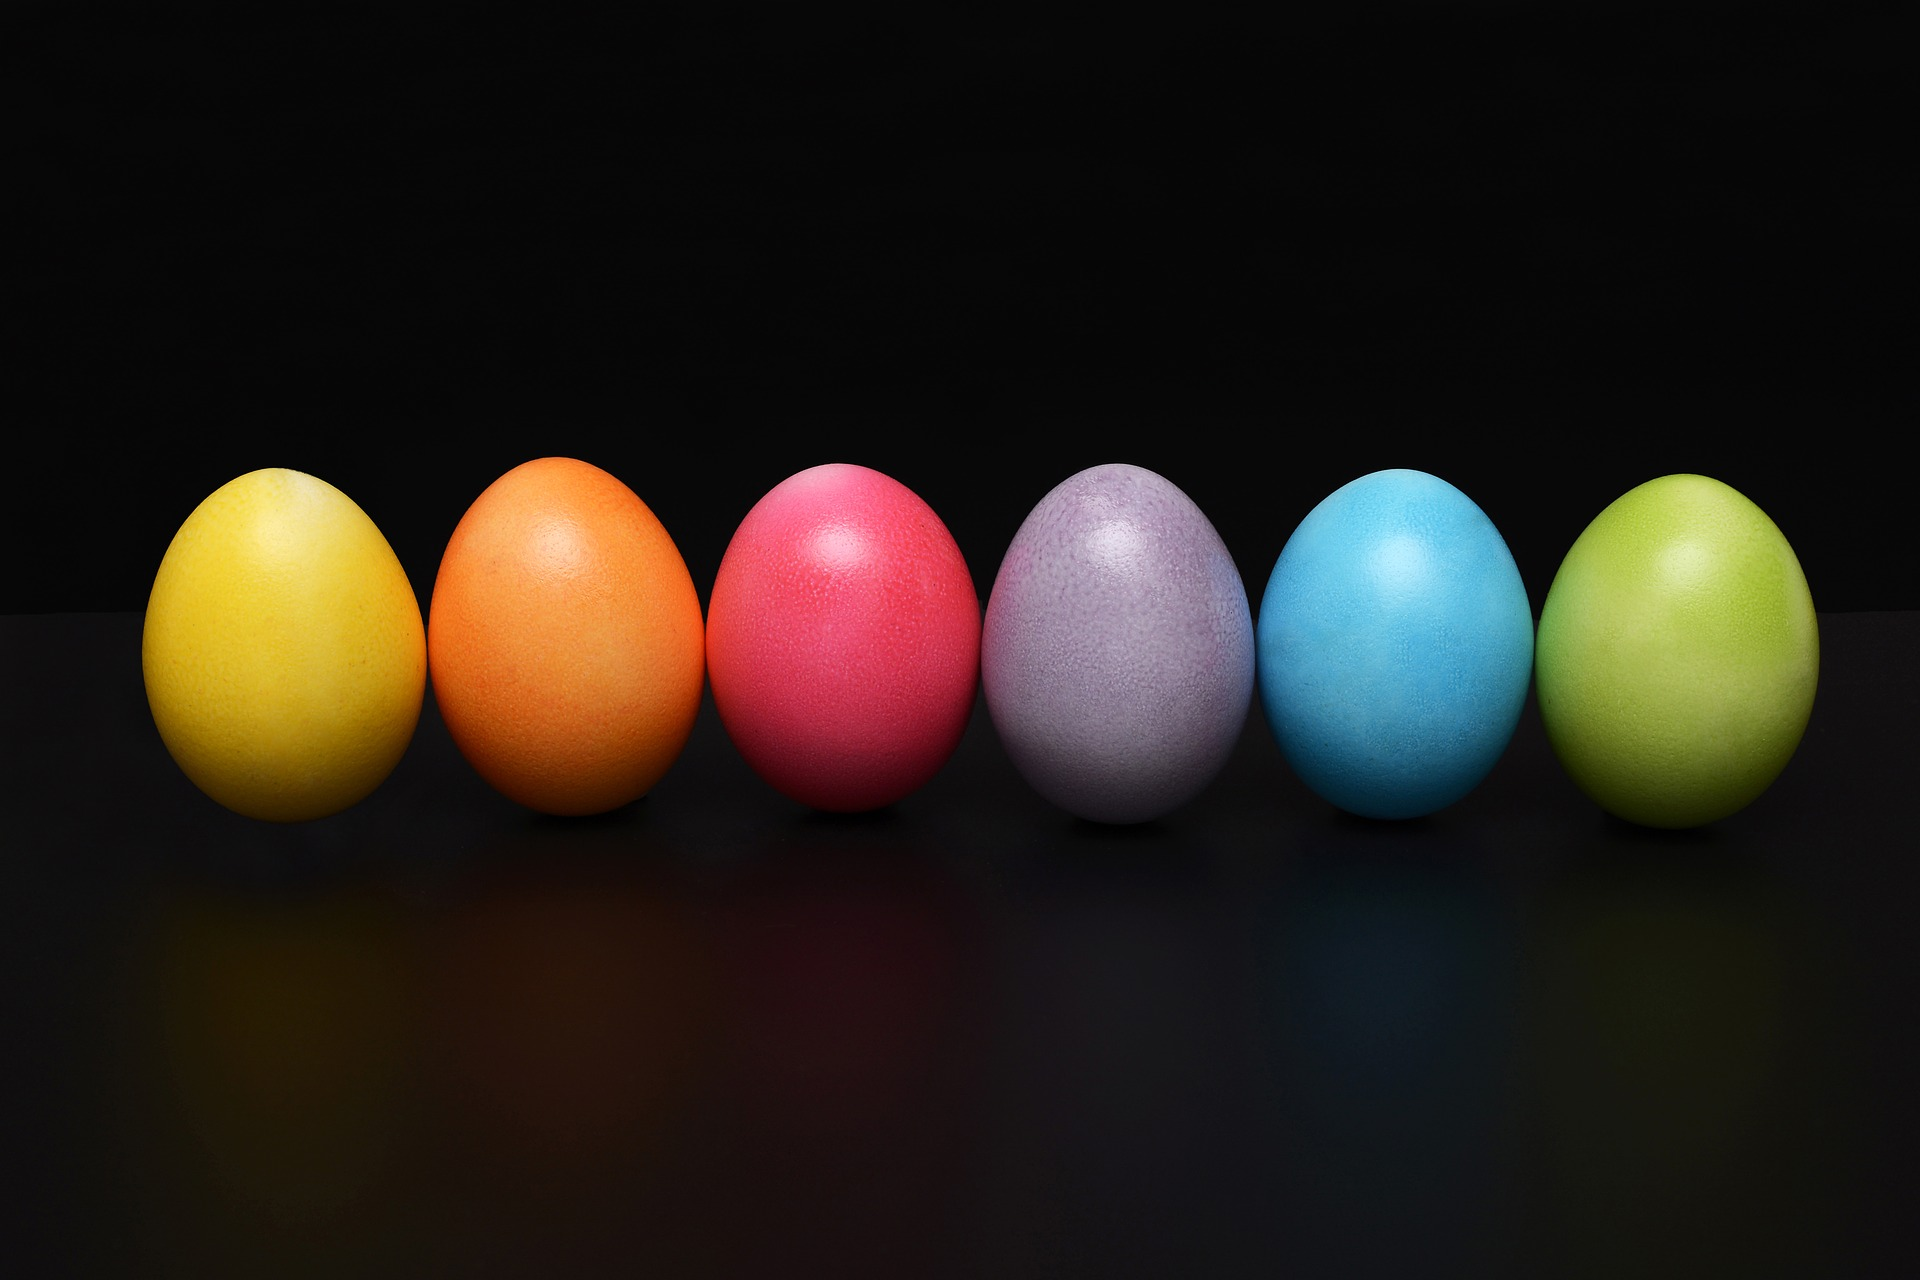 easter egg multicolour eggs psychological disorder impact eating habits festivities challenging